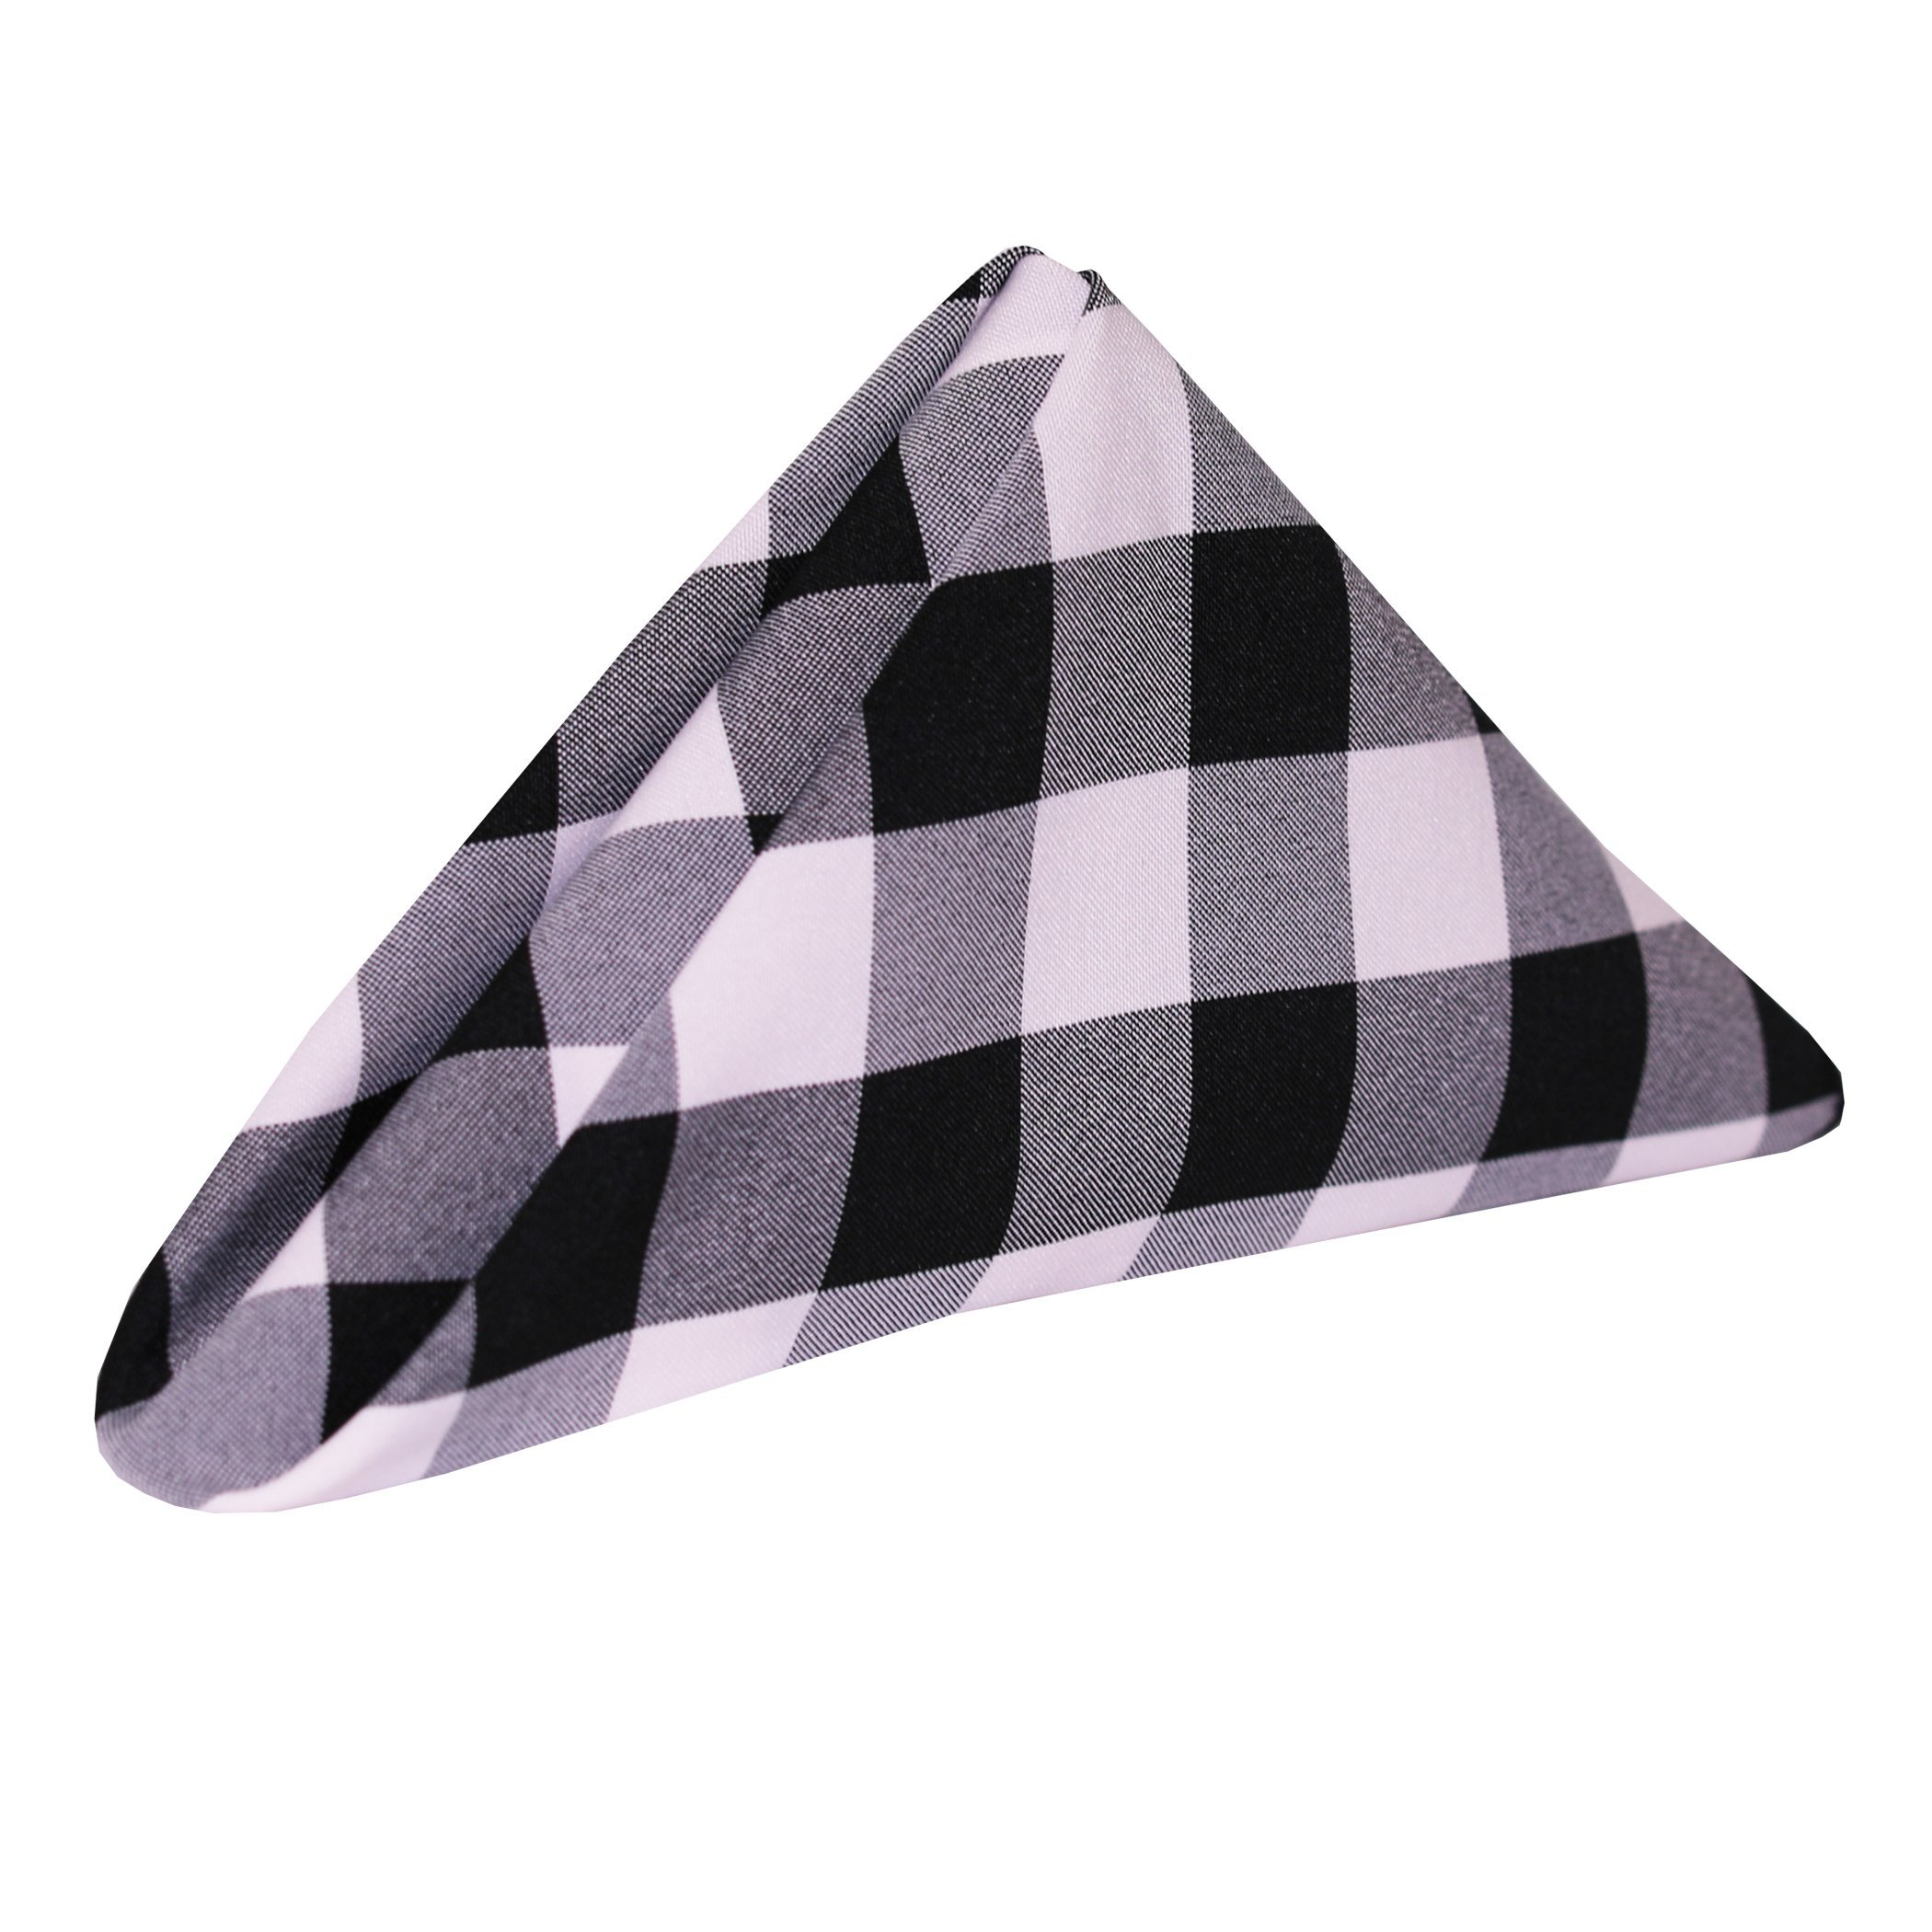 Ultimate Textile (10 Dozen) 17 x 17-Inch Polyester Checkered Cloth Napkins - for Picnic, Outdoor or Indoor Party use, Black and White